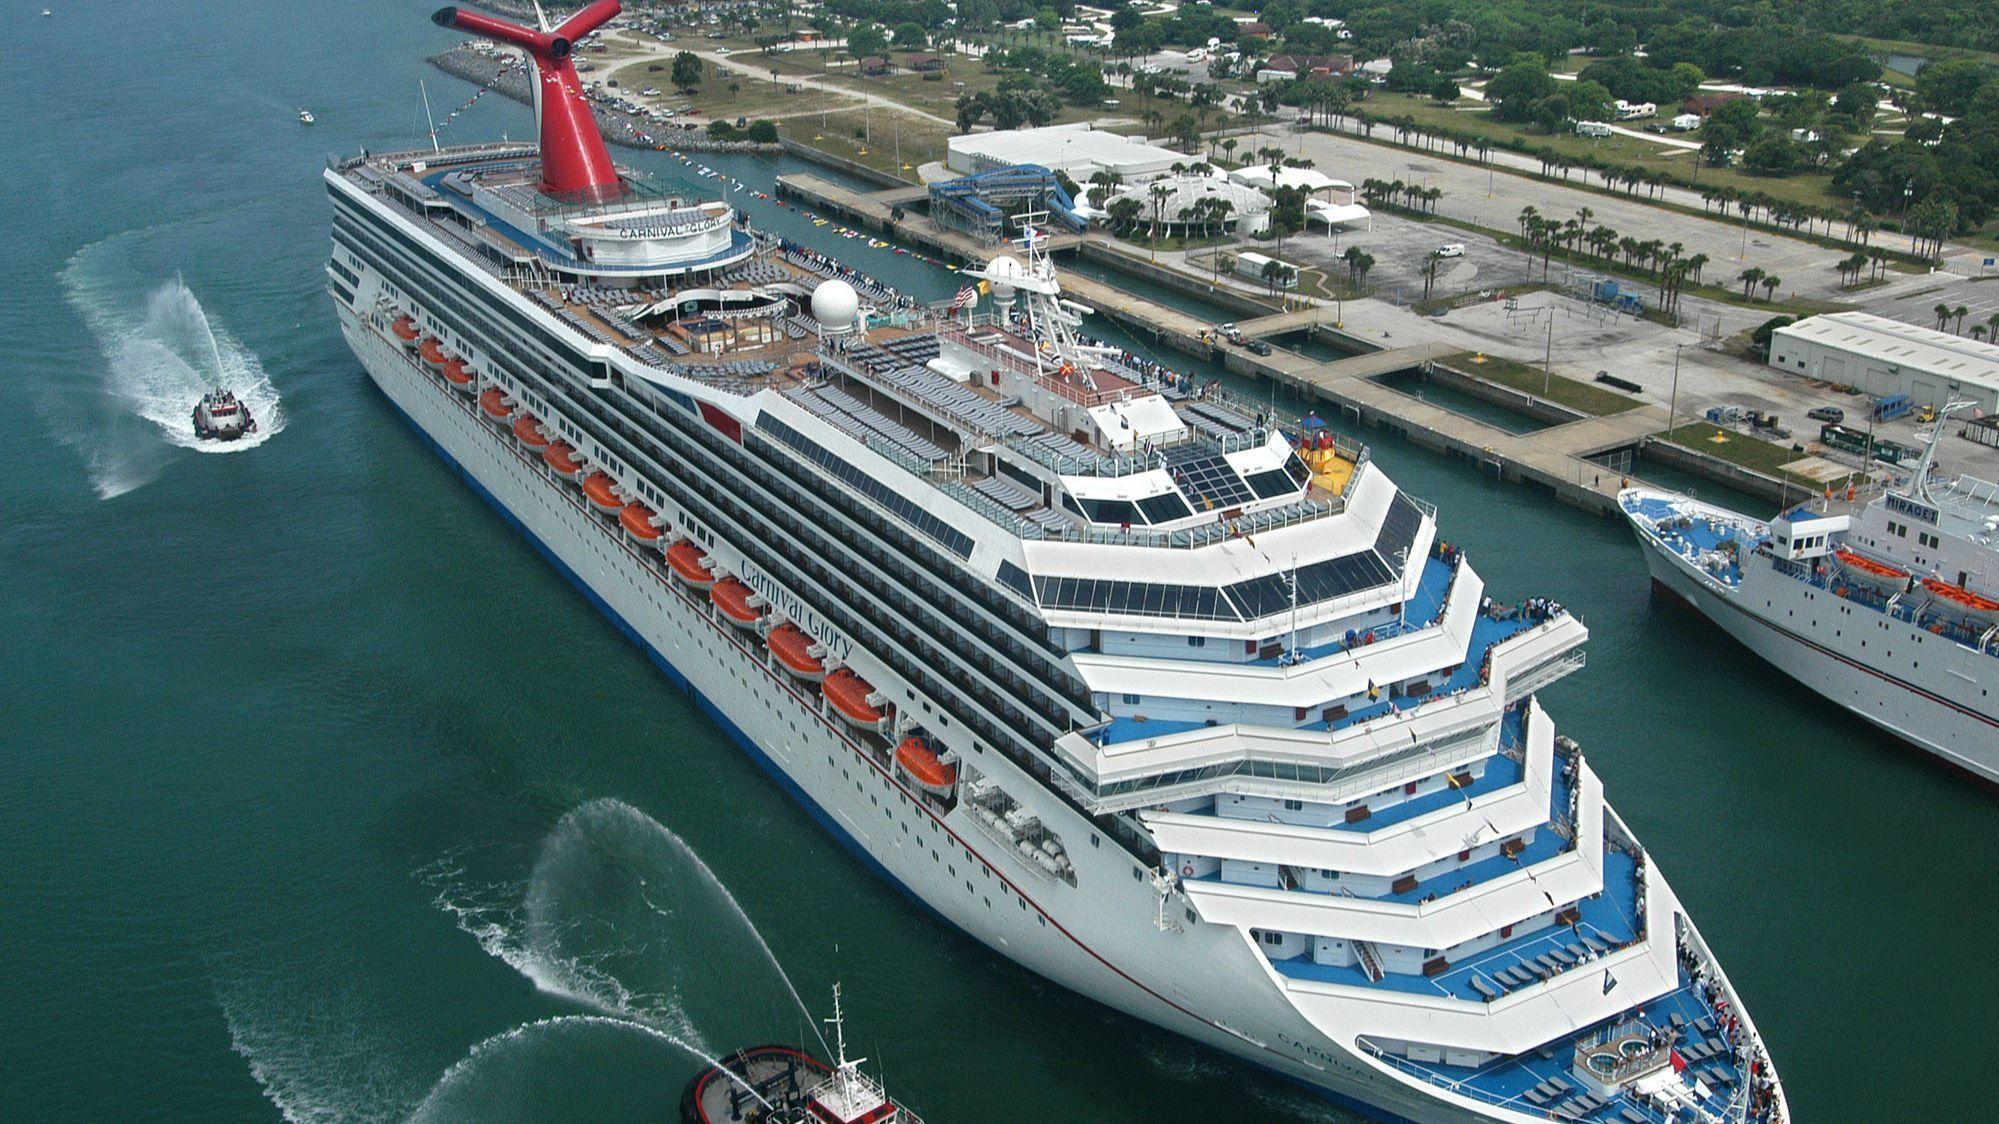 carnival may be bringing its largest ever ship to port canaveral